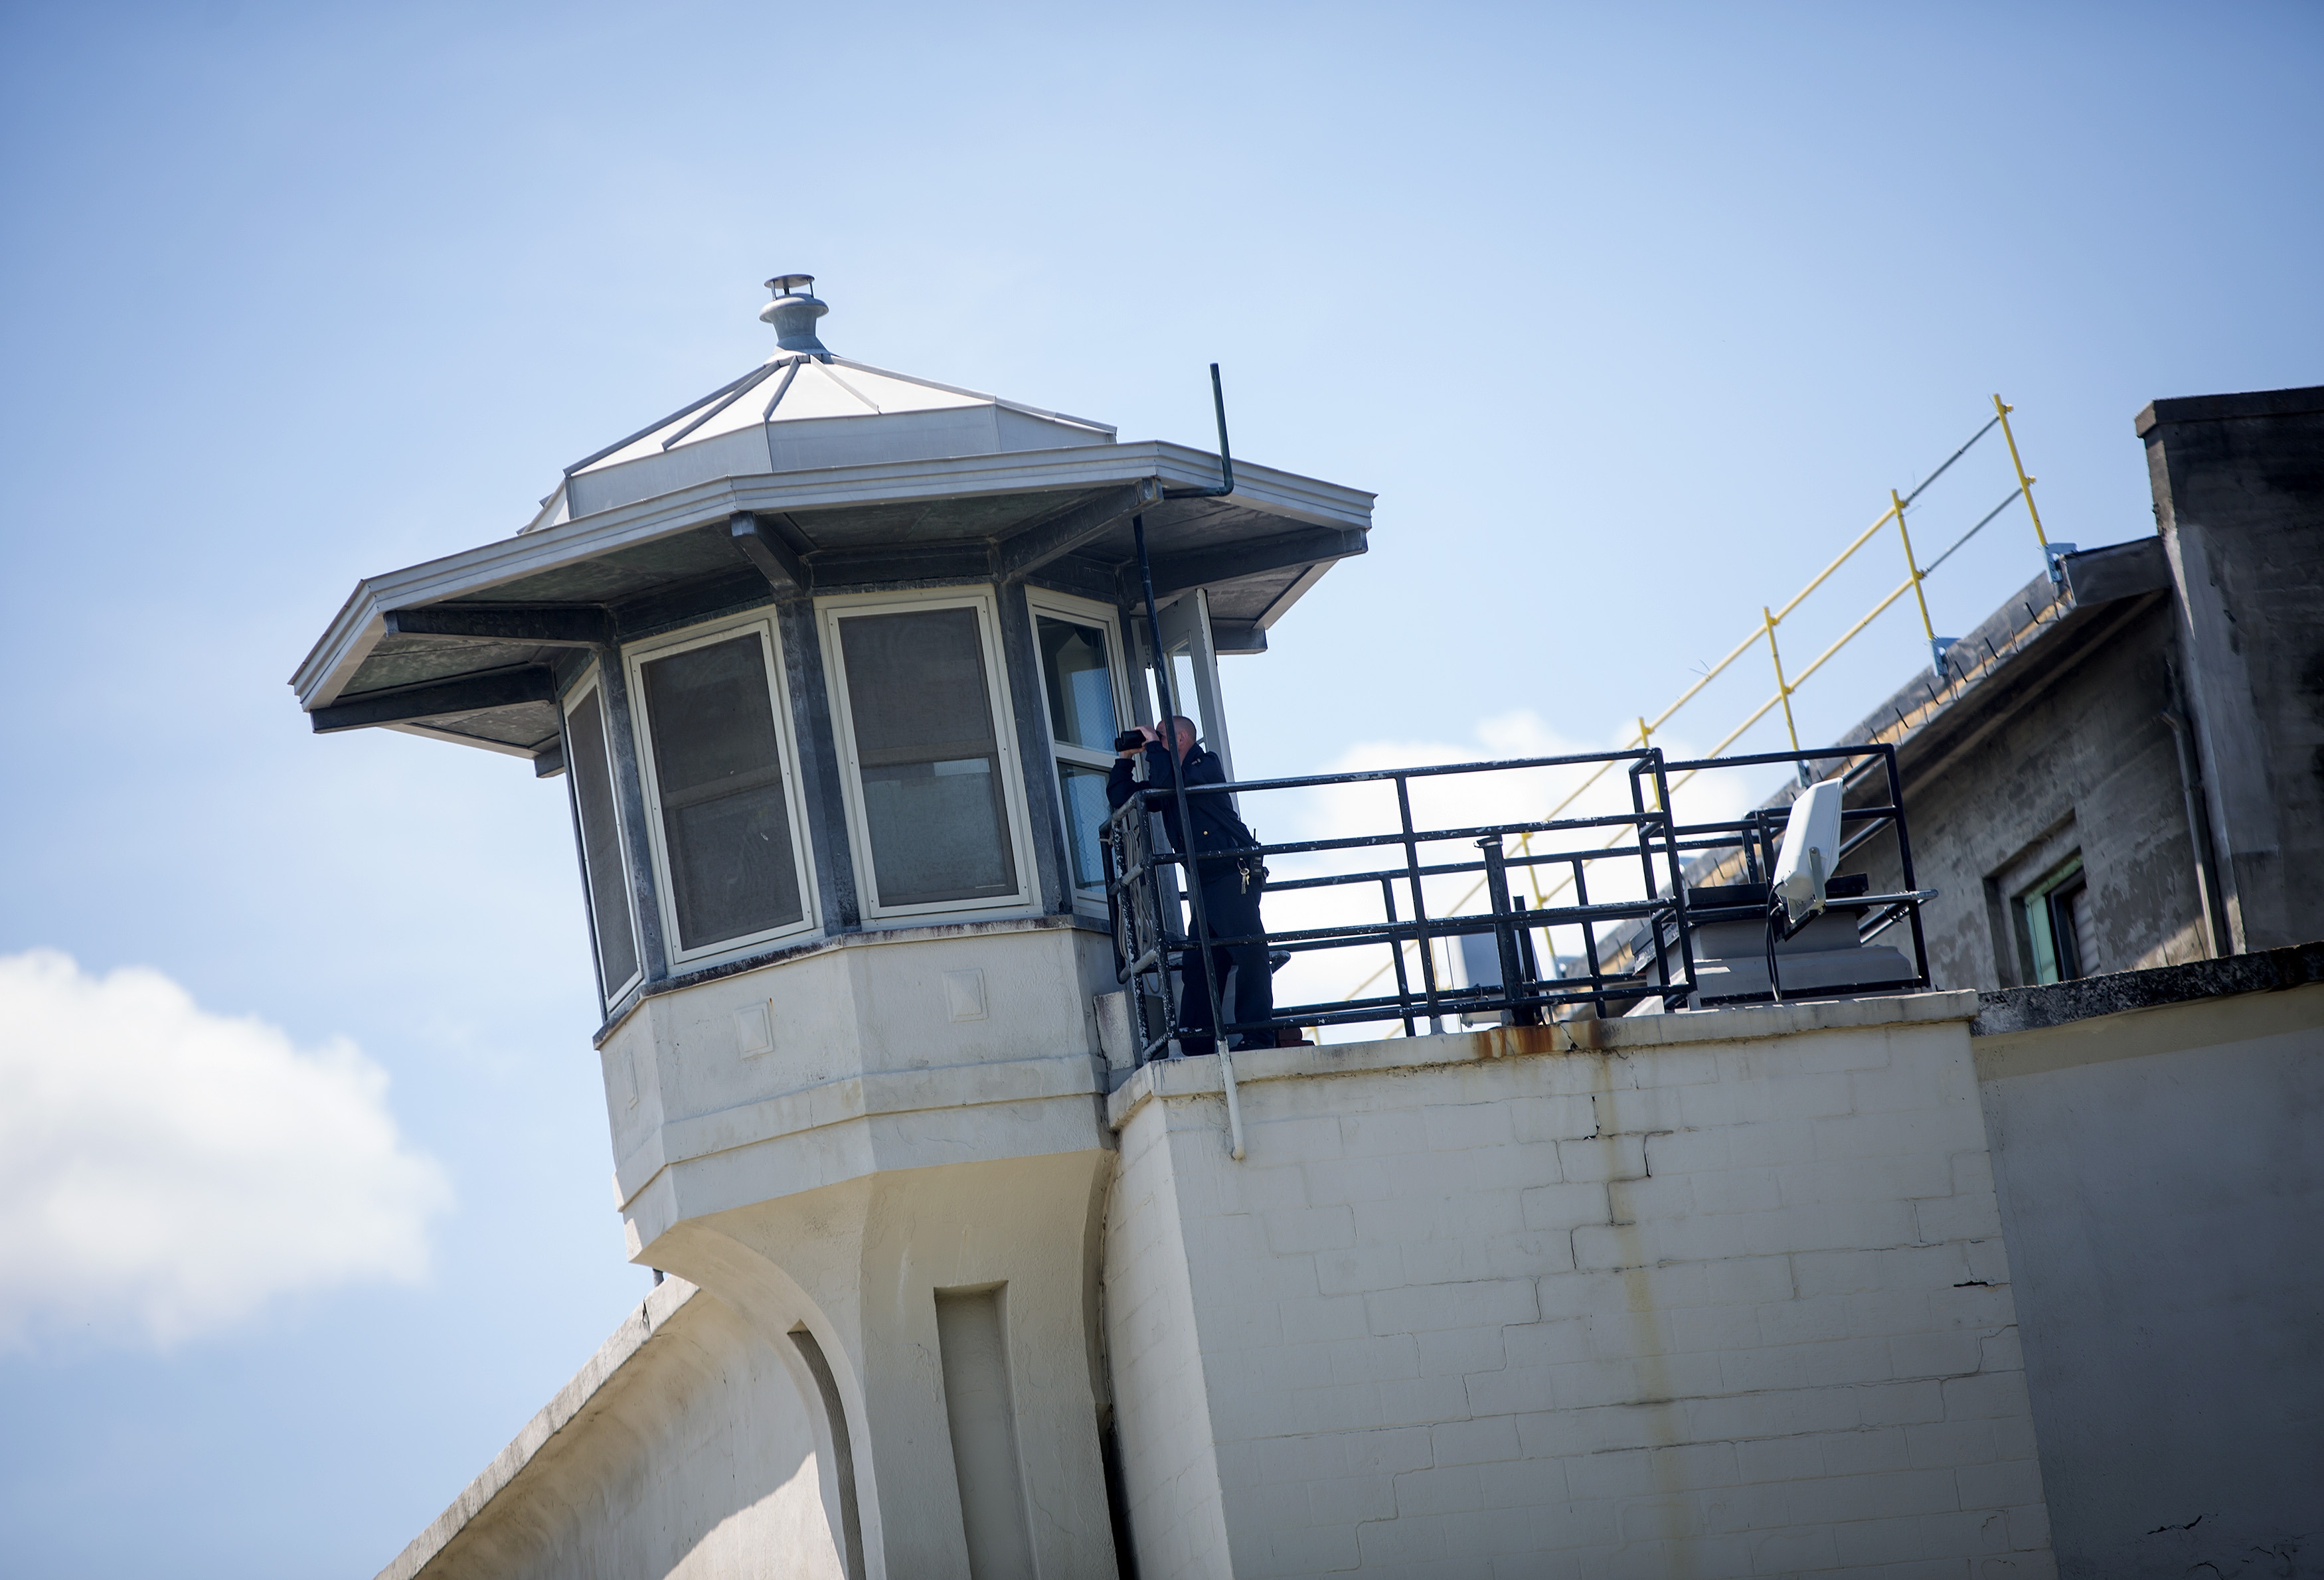 The elaborate escape from Clinton Correctional Facility in Dannemora would not have been possible without the assistance of prison employees. (Getty Images)